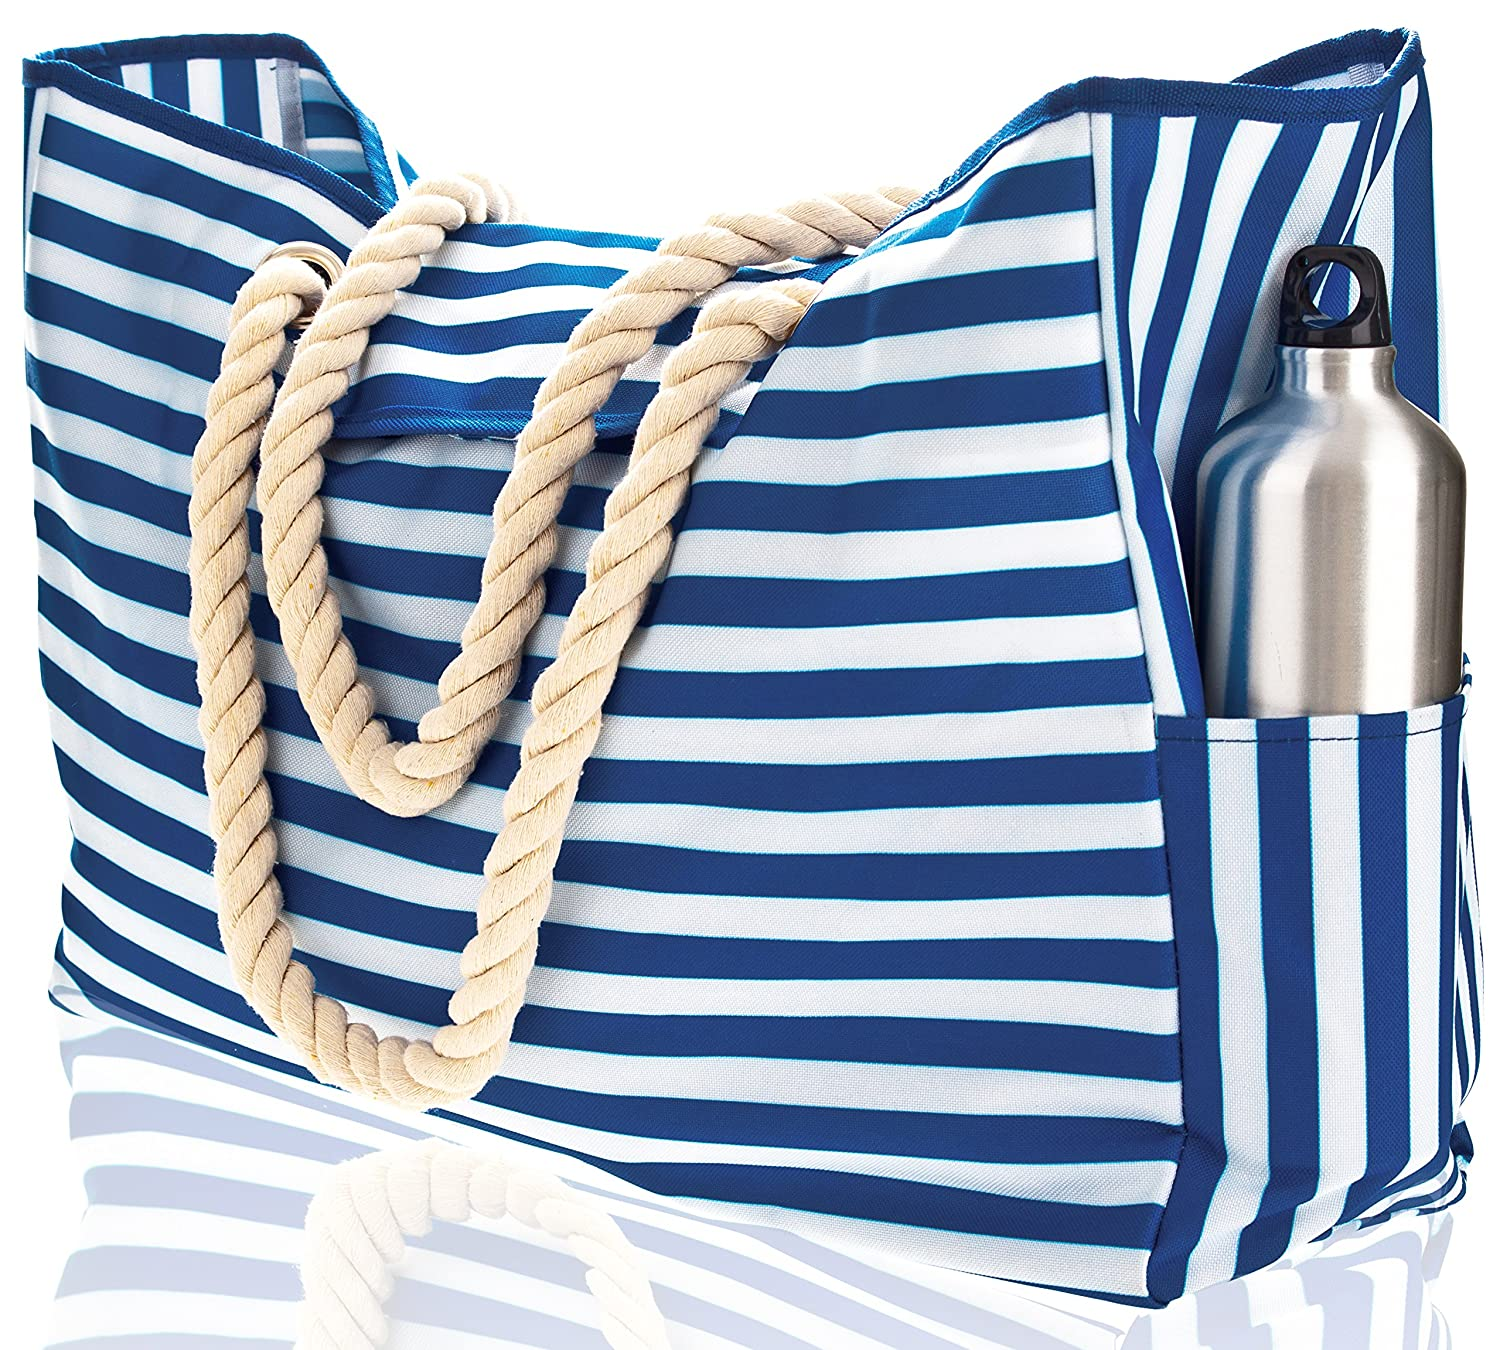 Beach Bag XXL (HUGE). 100% Waterproof. L22'xH15'xW6'. Cotton Rope Handles, Top Magnet Clasp, Two Outside Pockets. Blue Stripes Shoulder Beach Tote has Phone Case, Built-In Key Holder, Bottle Opener SHYLERO